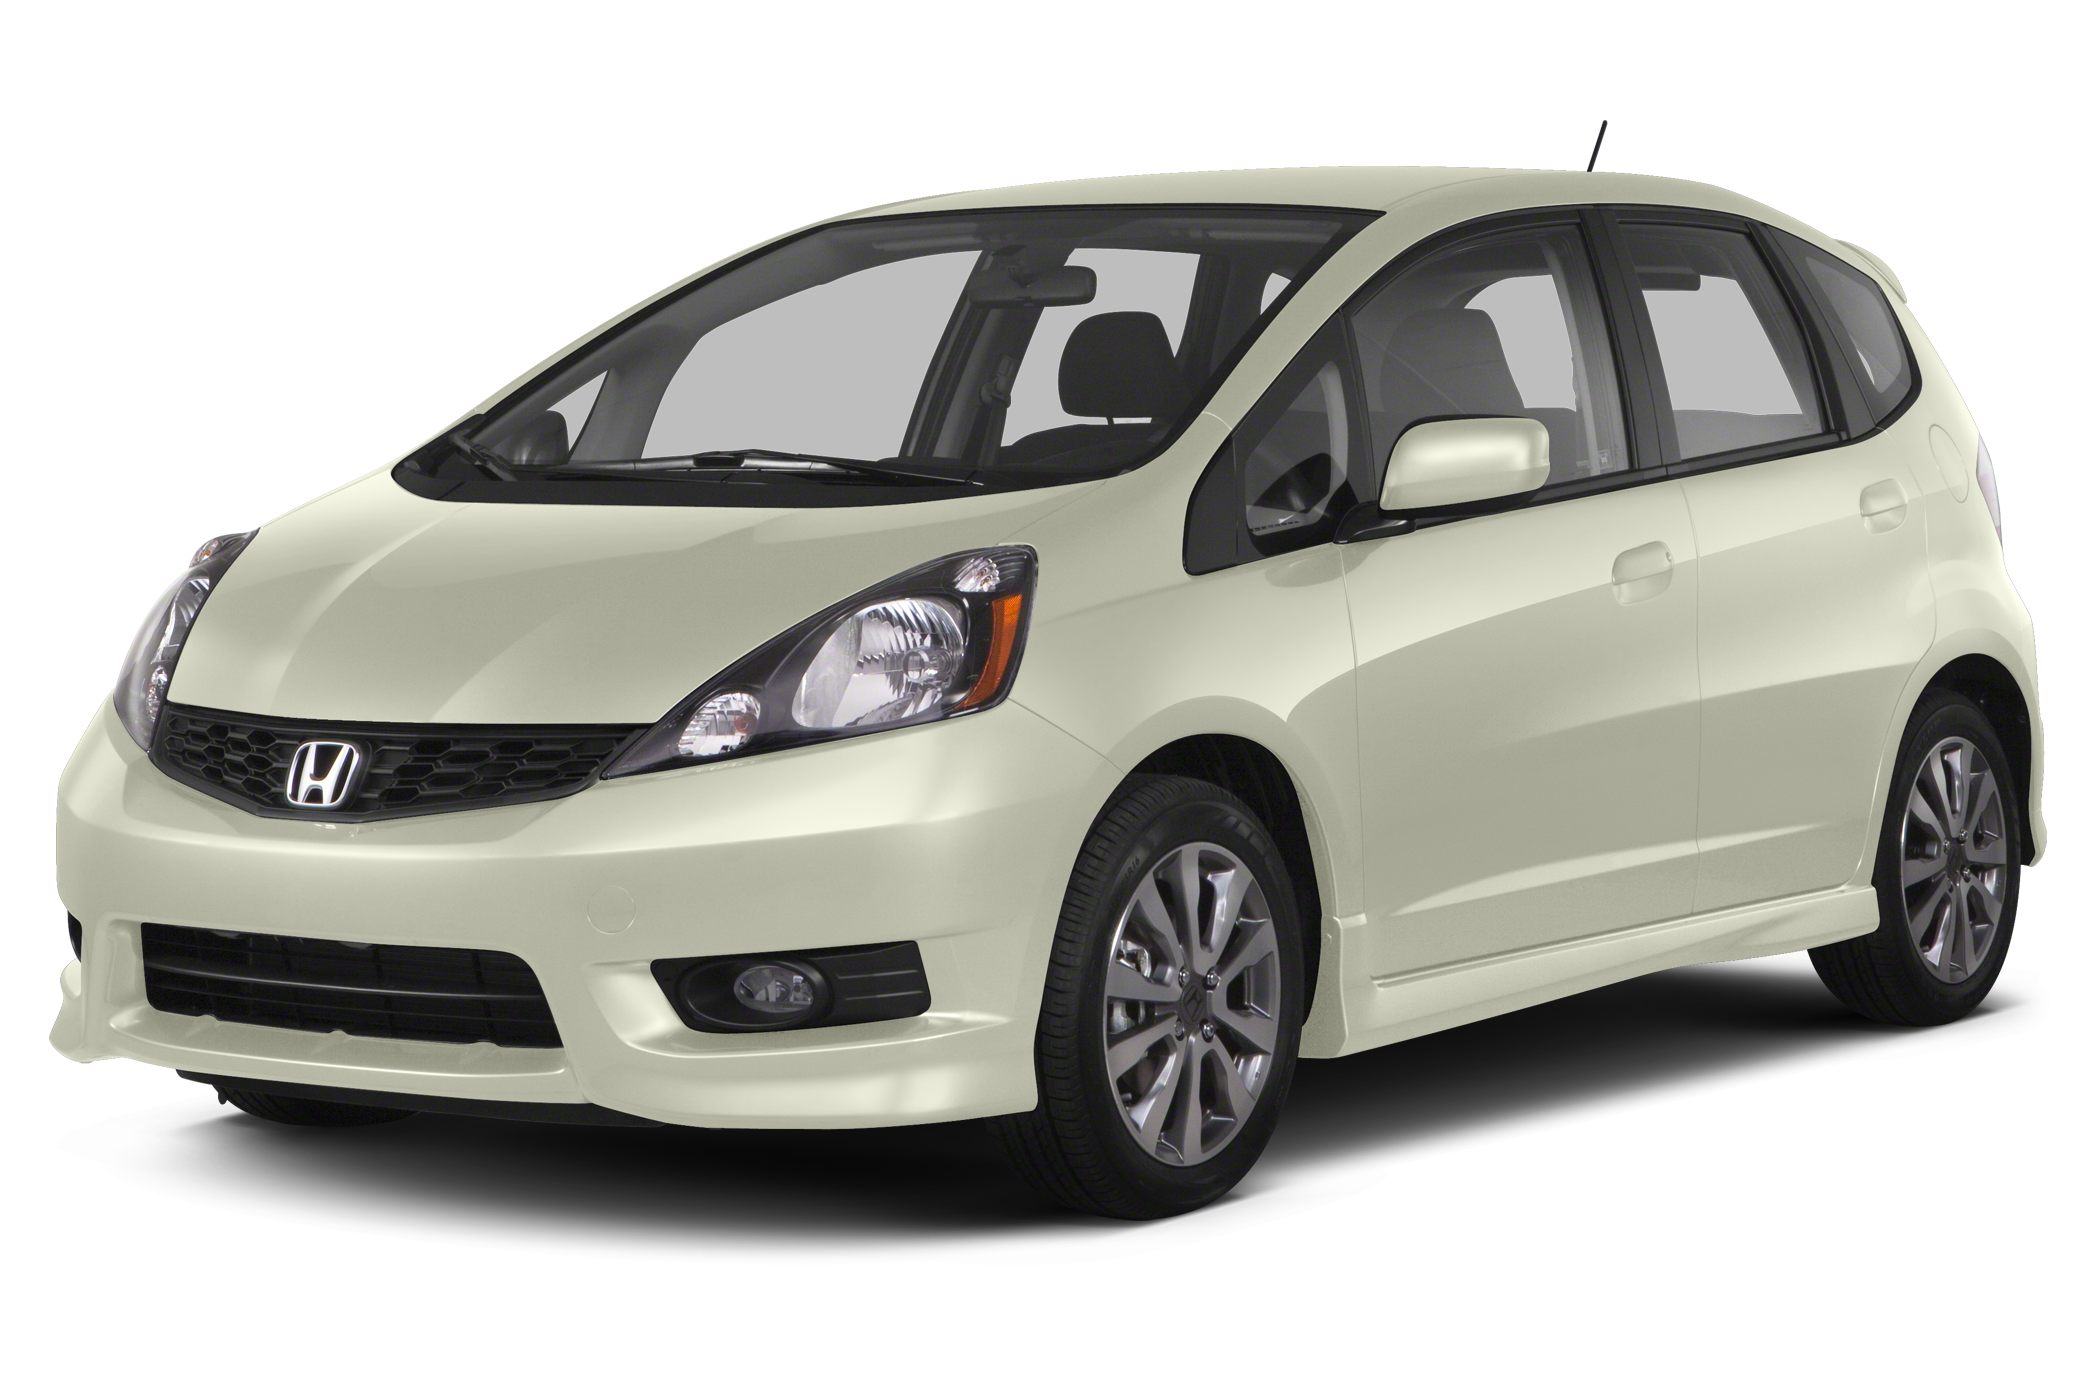 2013 Honda Fit Sport Hatchback for sale in Vero Beach for $16,599 with 14,148 miles.